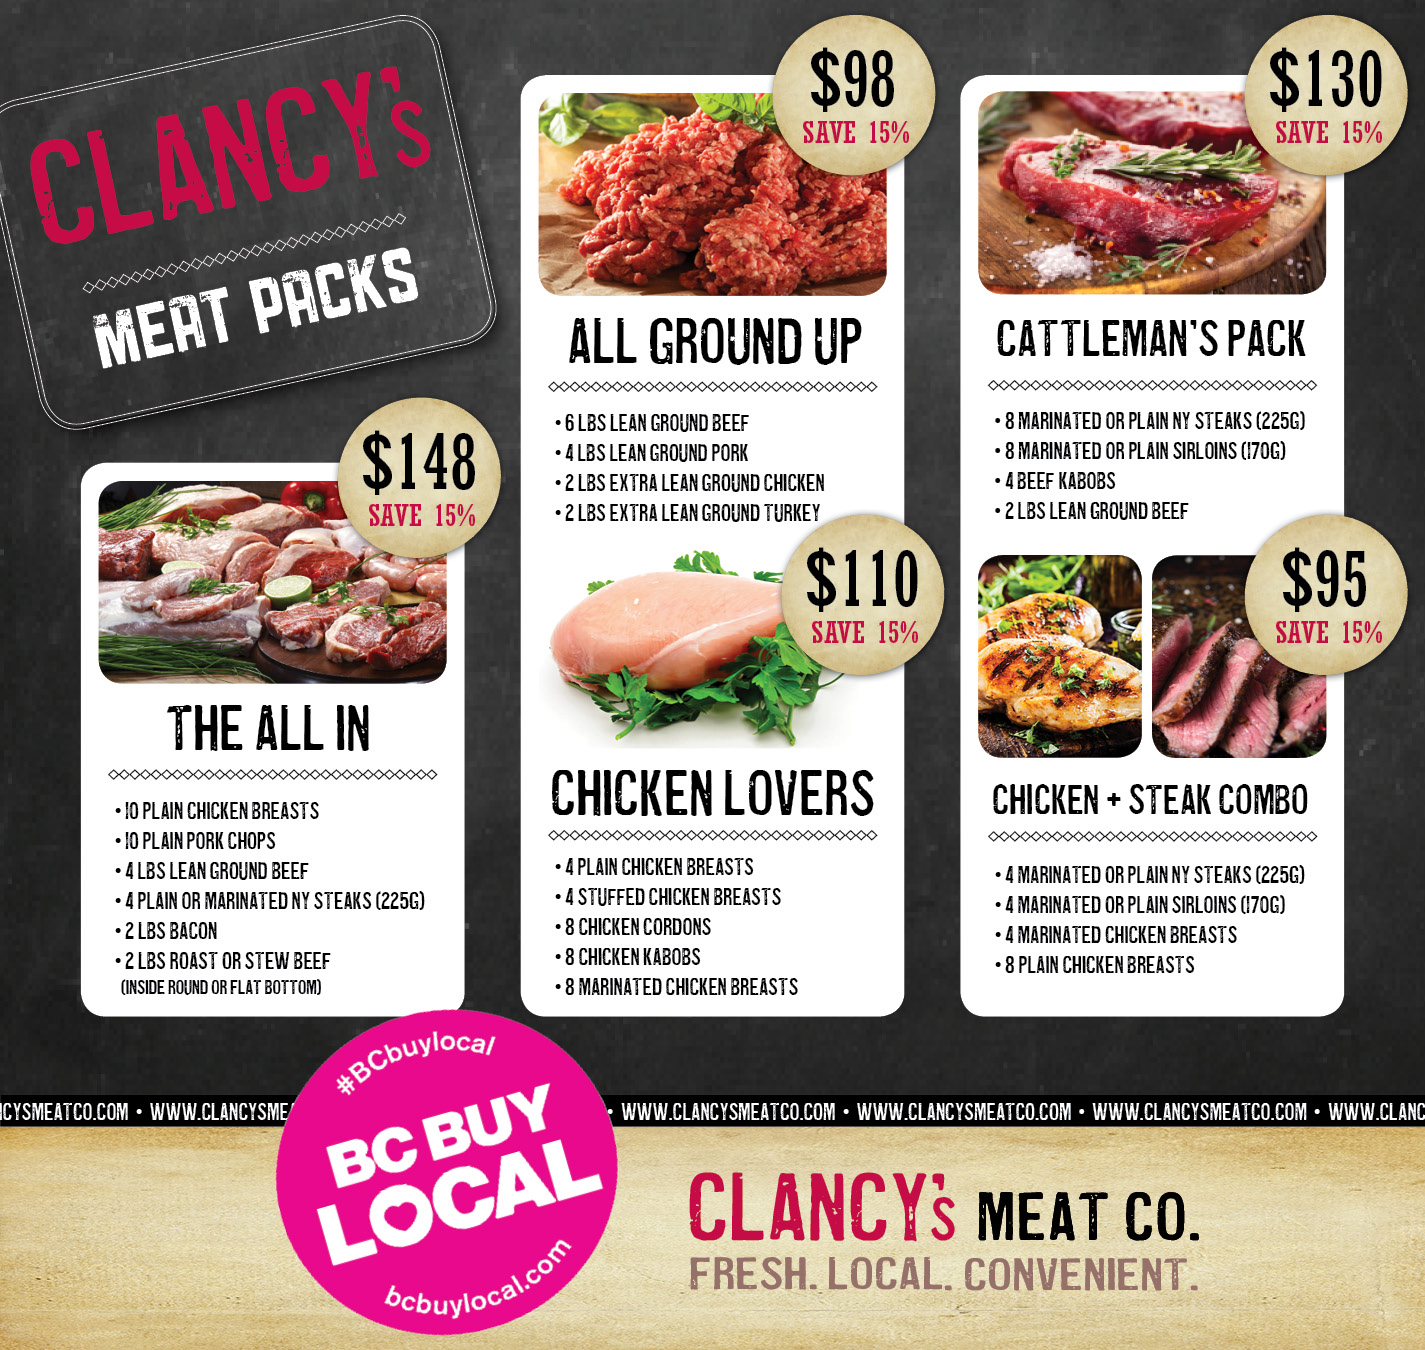 Clancys Meat Pack 2019.jpg